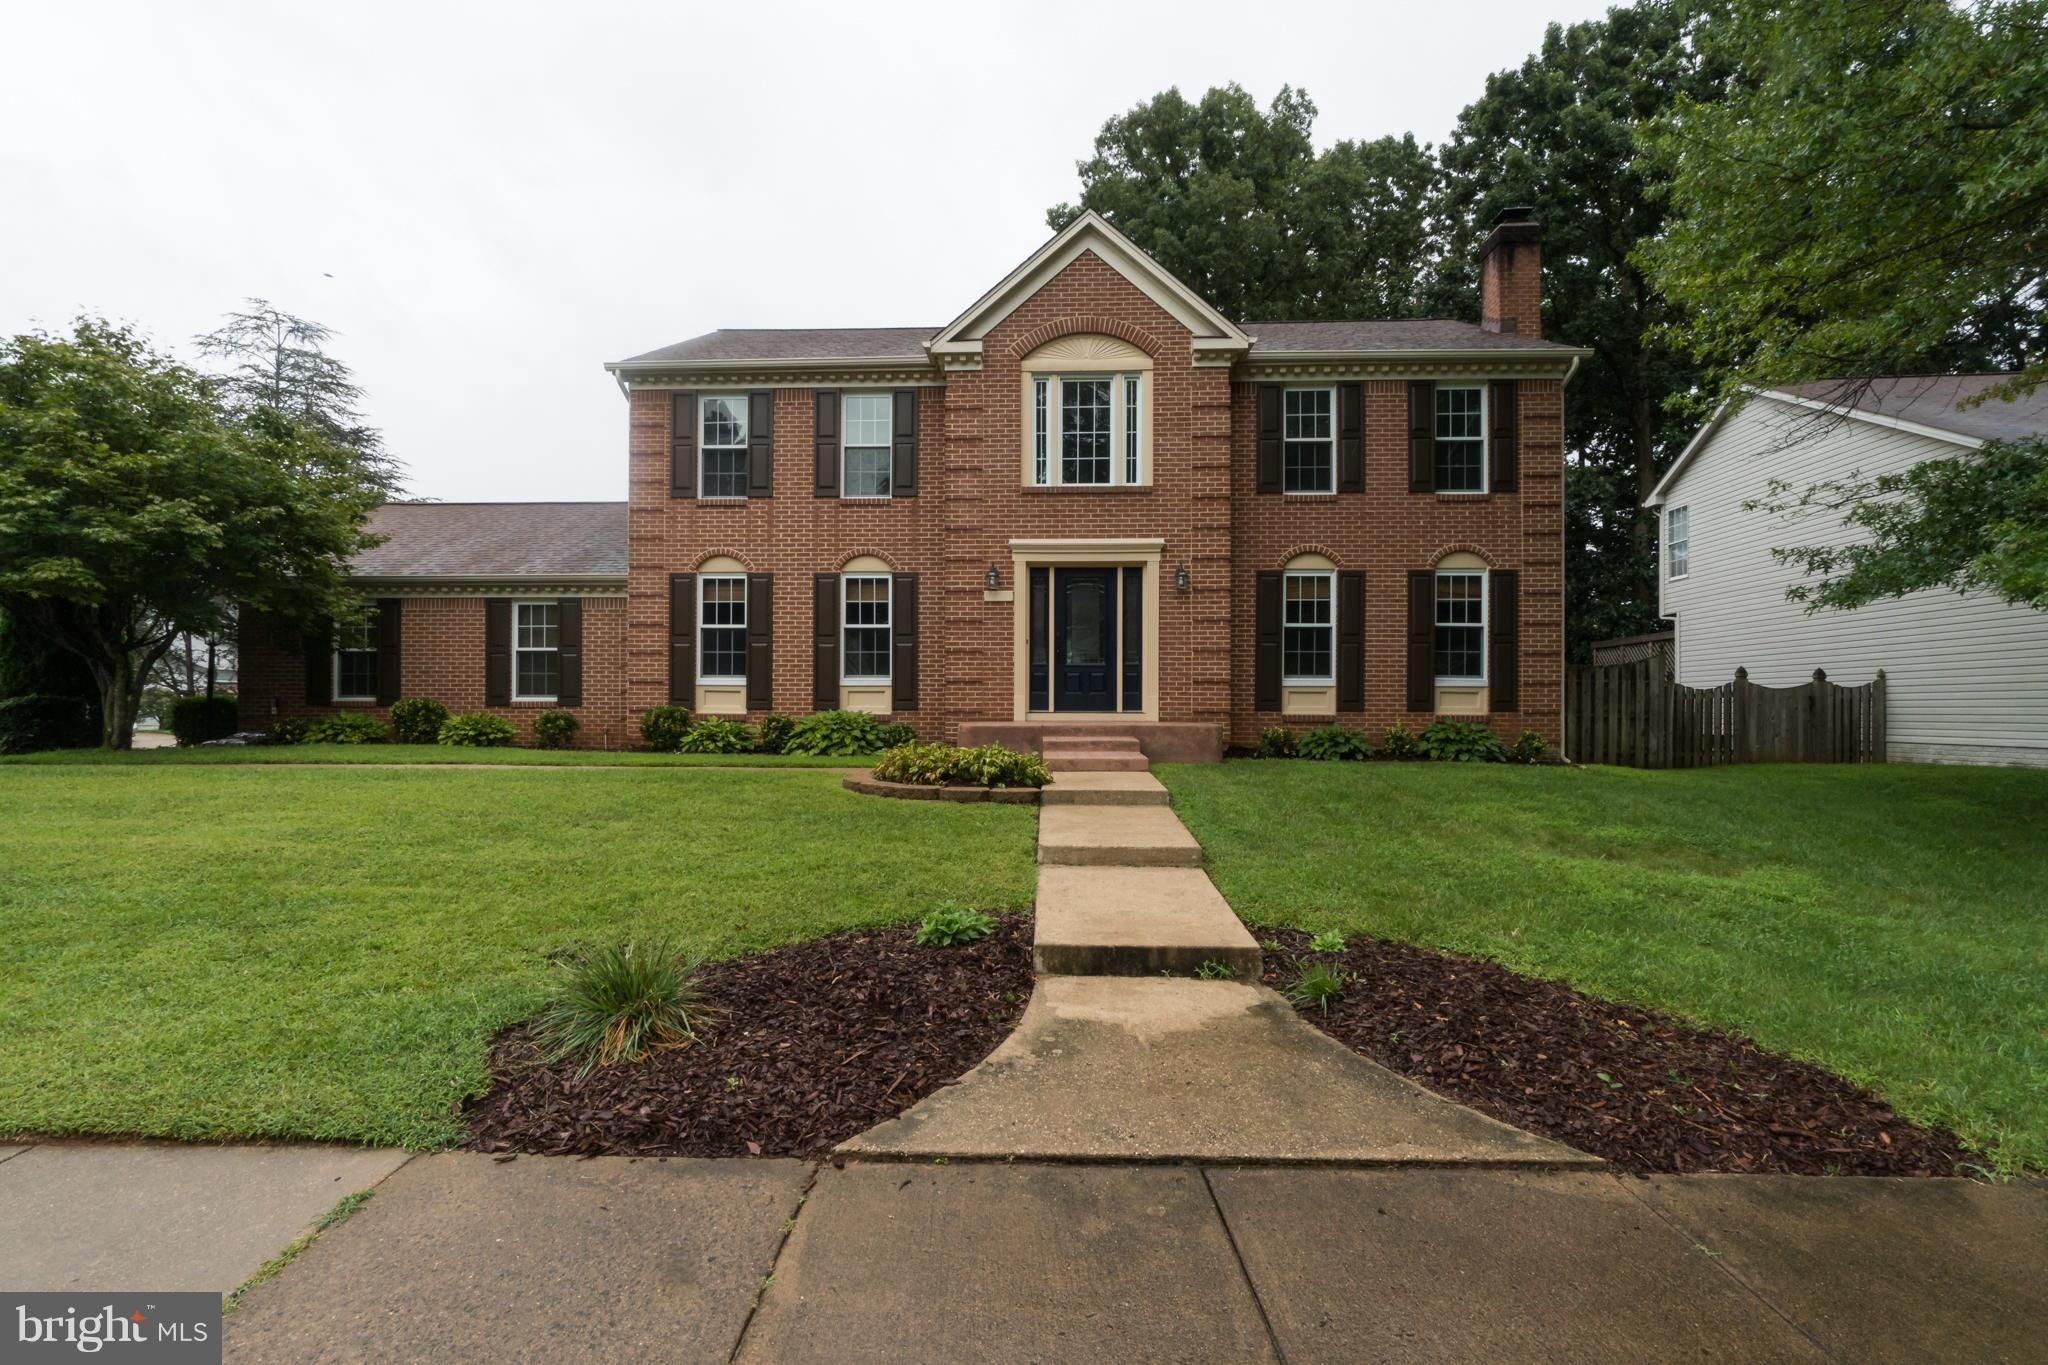 Back on the market after buyers financing fell thru.  2 level grand foyer welcomes you.Enjoy the in ground pool. Remodeled baths, freshly painted, new dishwasher, well maintained 5 bdrm home and 3.5 baths with plenty of space to stretch out on a corner lot in a quiet subdivision. Min.to I-95, VDOT lots,shopping, and restaurants. Efficient natural gas heat and hot water with fully fenced rear yard.